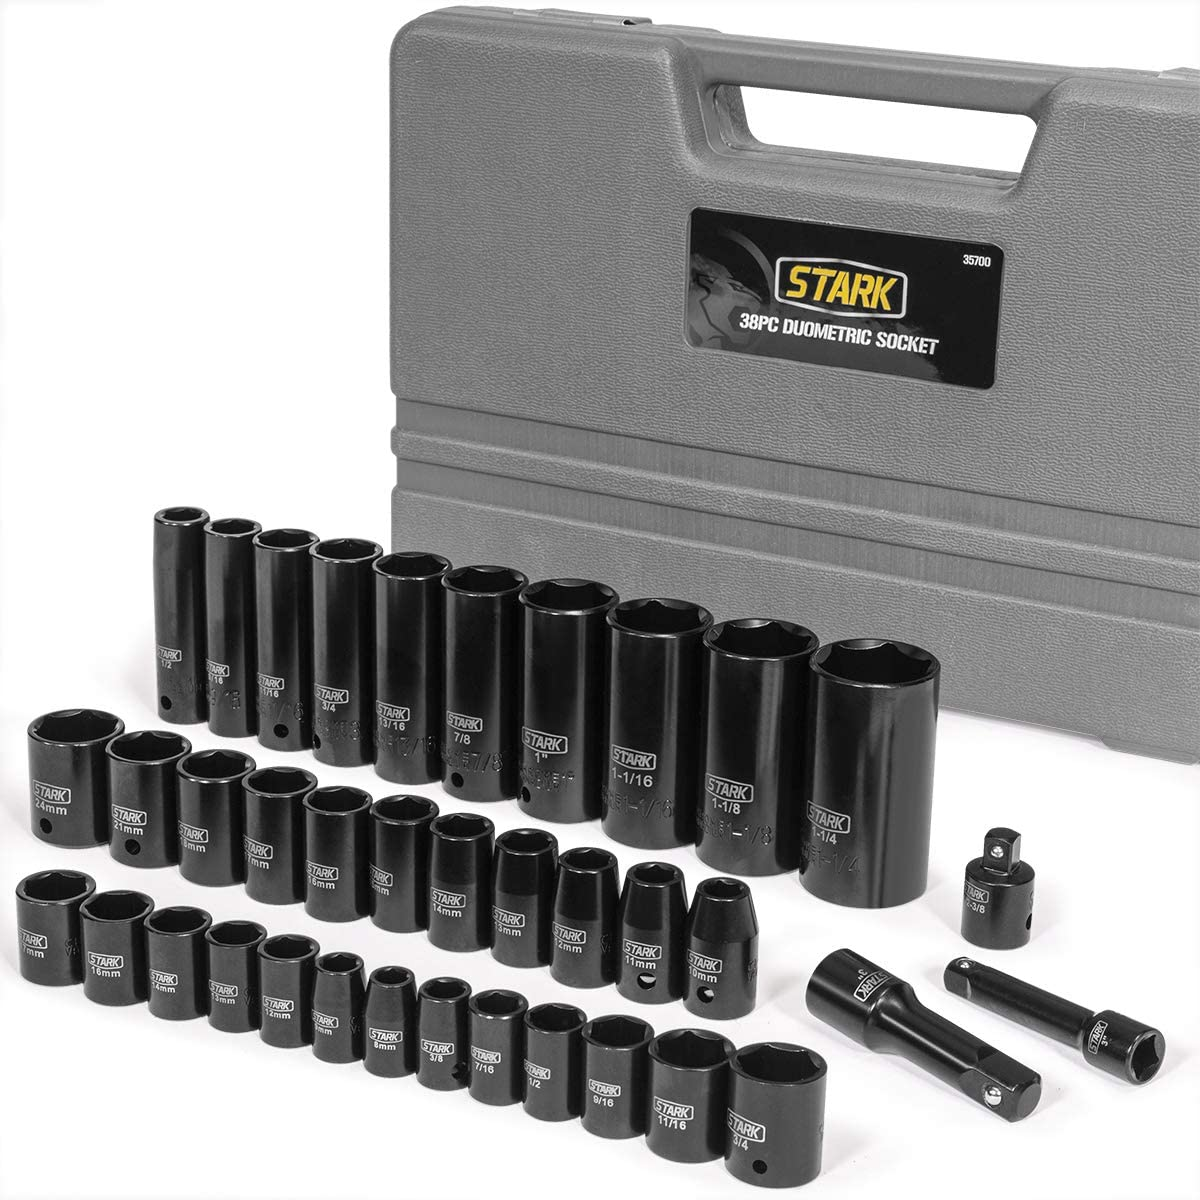 "Stark 38PC Impact Socket Set SAE and Metric Deep Shallow 3/8"" & 1/2"" Drive Extension Bar 6-Point Socket with Carrying Storage Case"